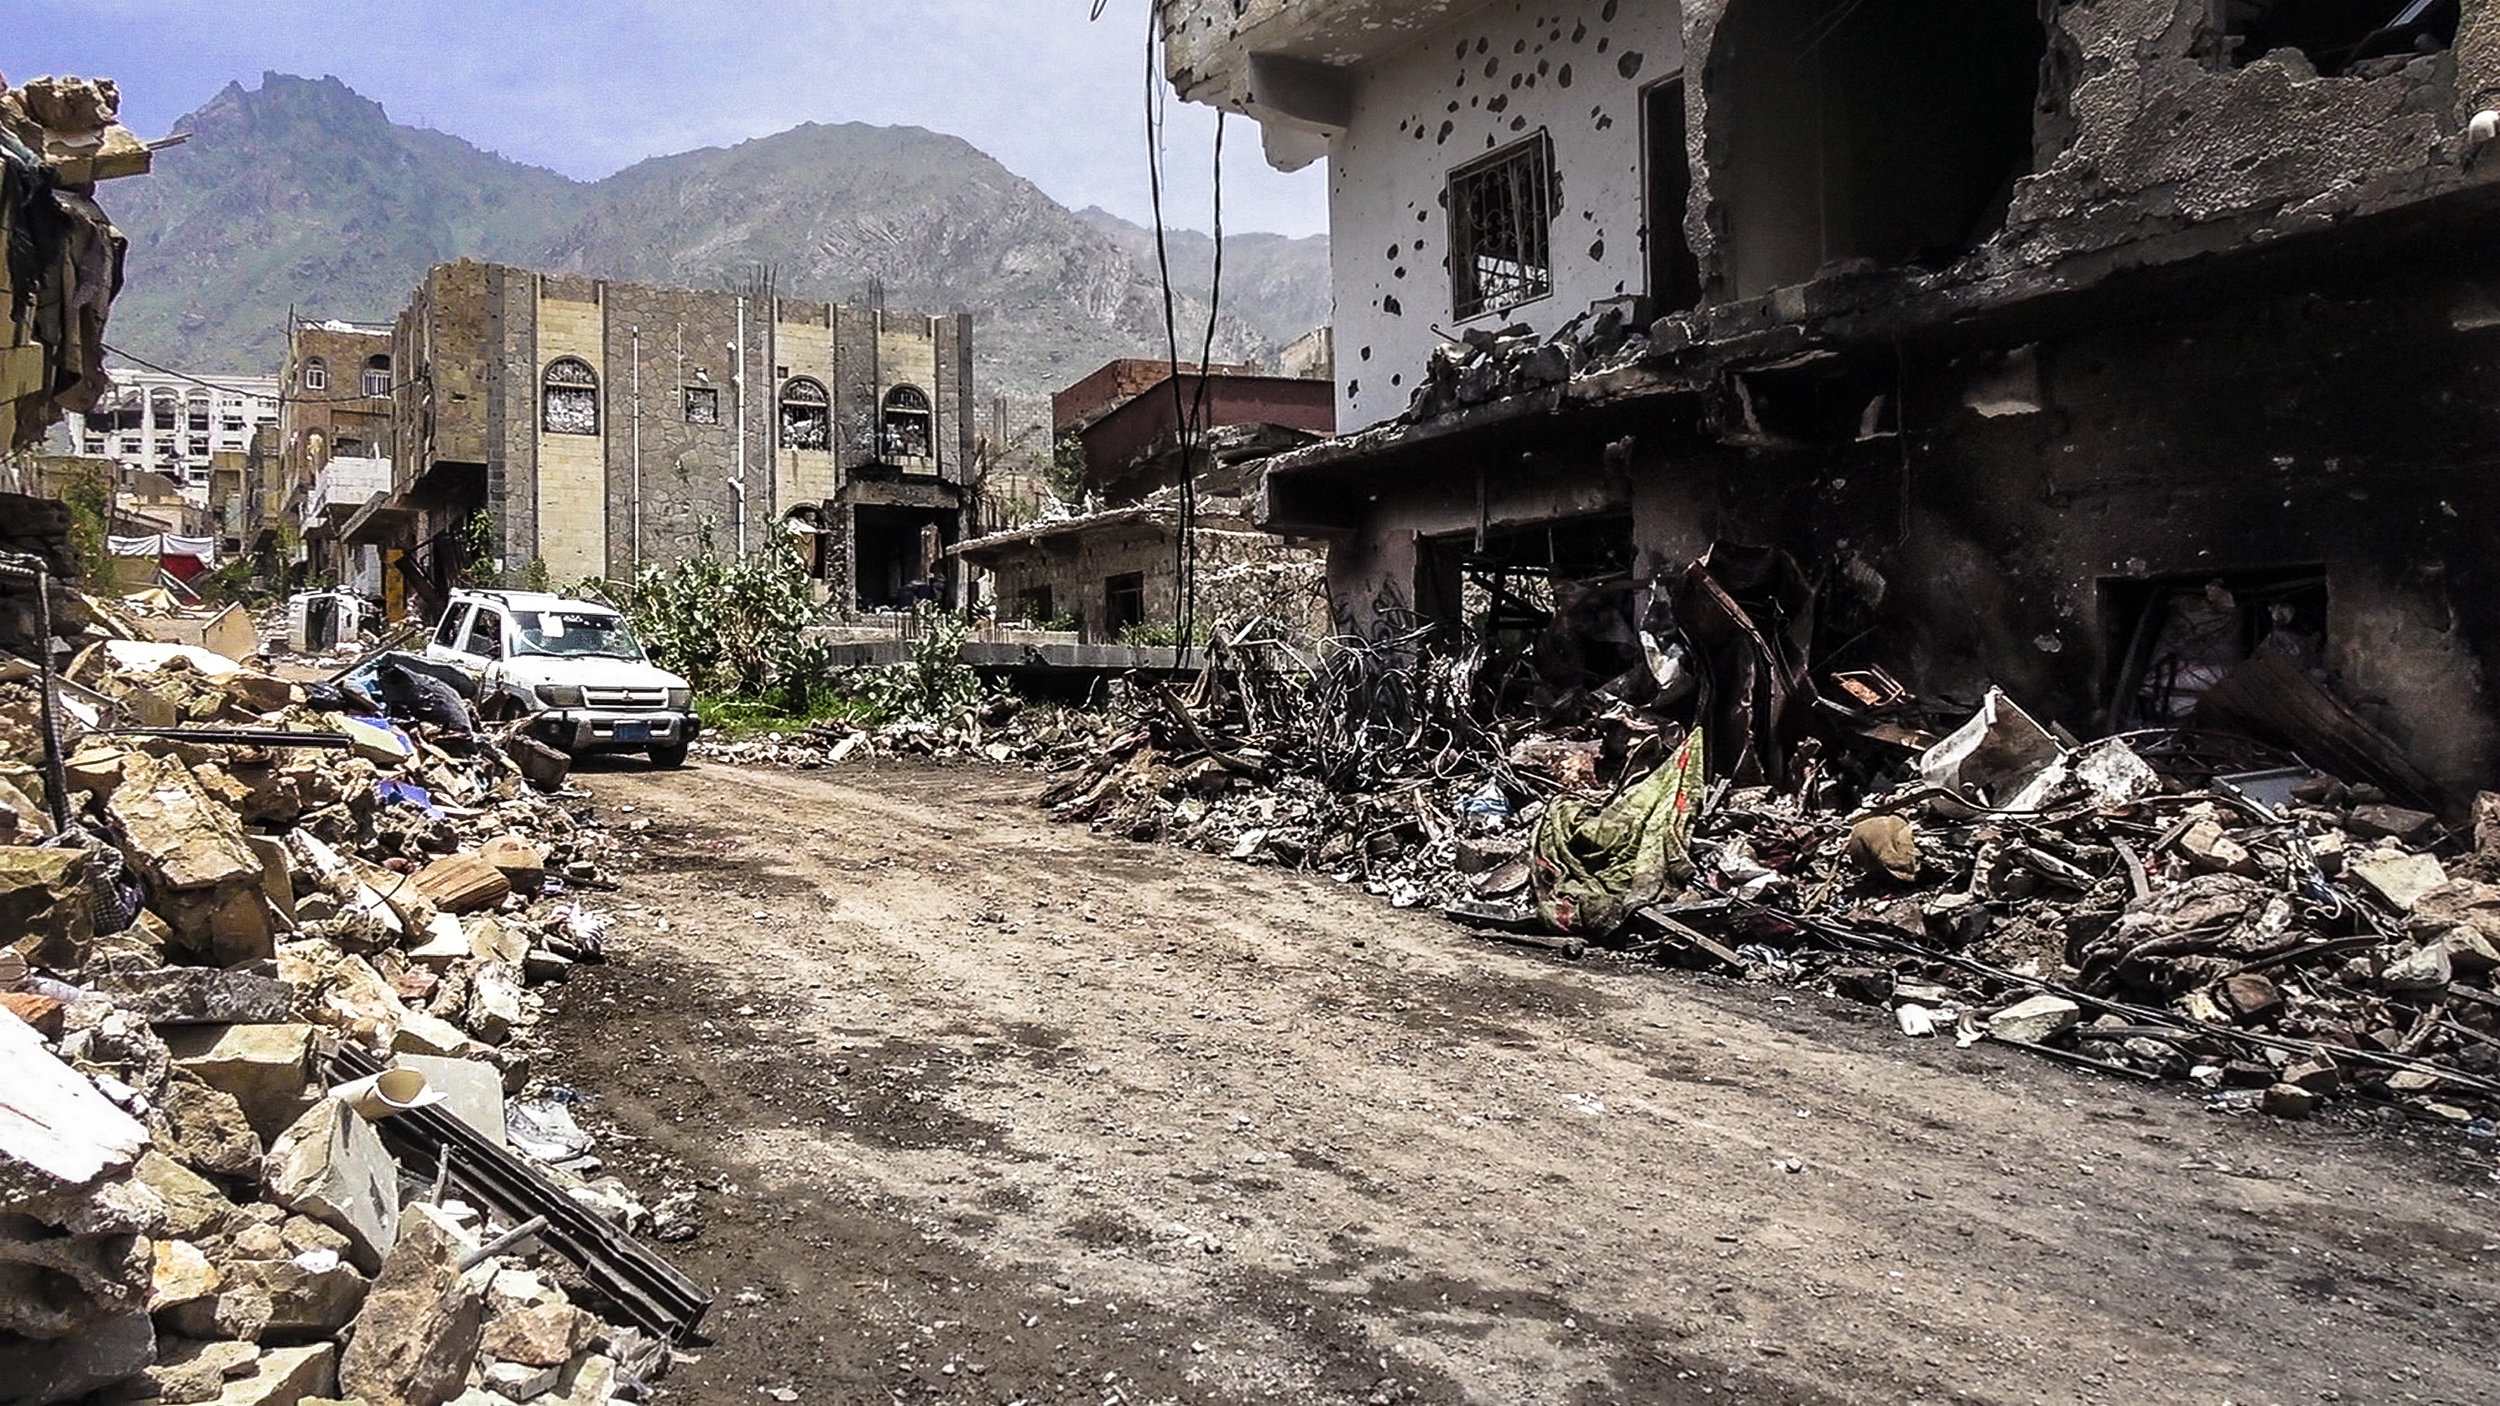 PICTURED:  Yemen/Taiz City - Nov 20 2018,  a month after Macron's secret meeting. Residential neighborhoods destroyed by the war by the Houthi militia on the city of Taiz since 2015.  credit  anasalhajj/Shutterstock.com